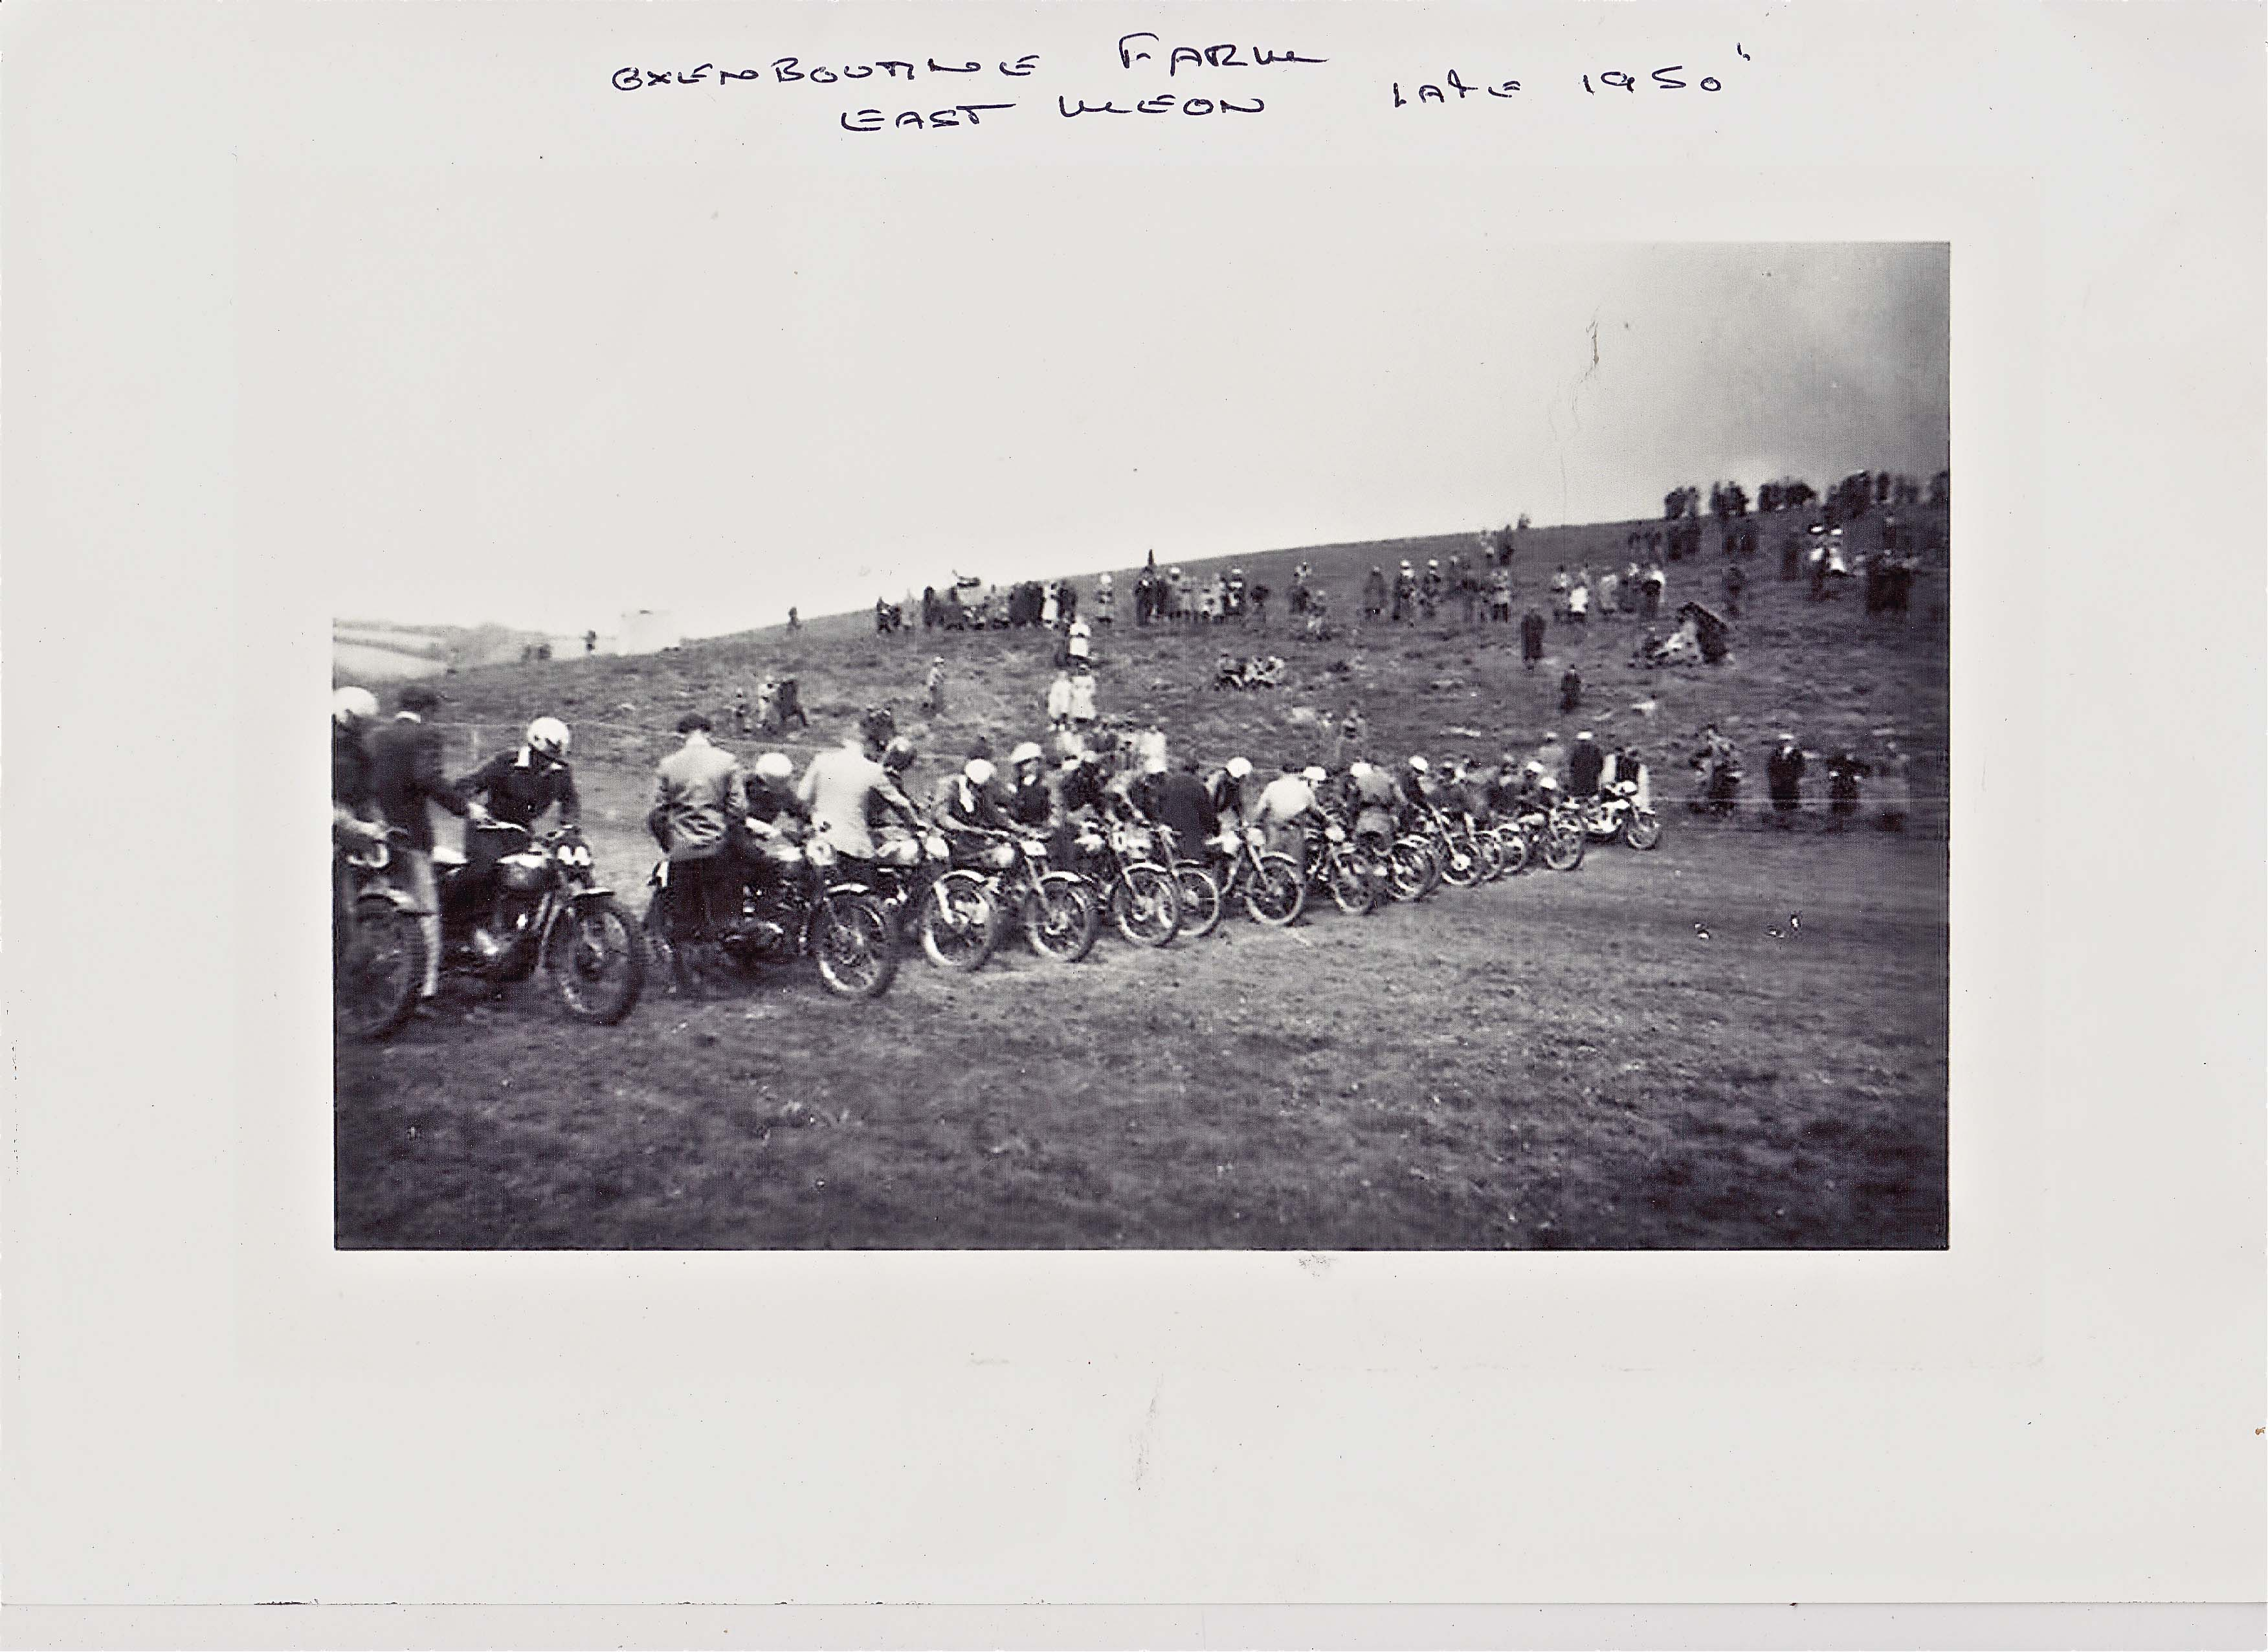 Motor bike rally at Oxenbourne Farm 1950